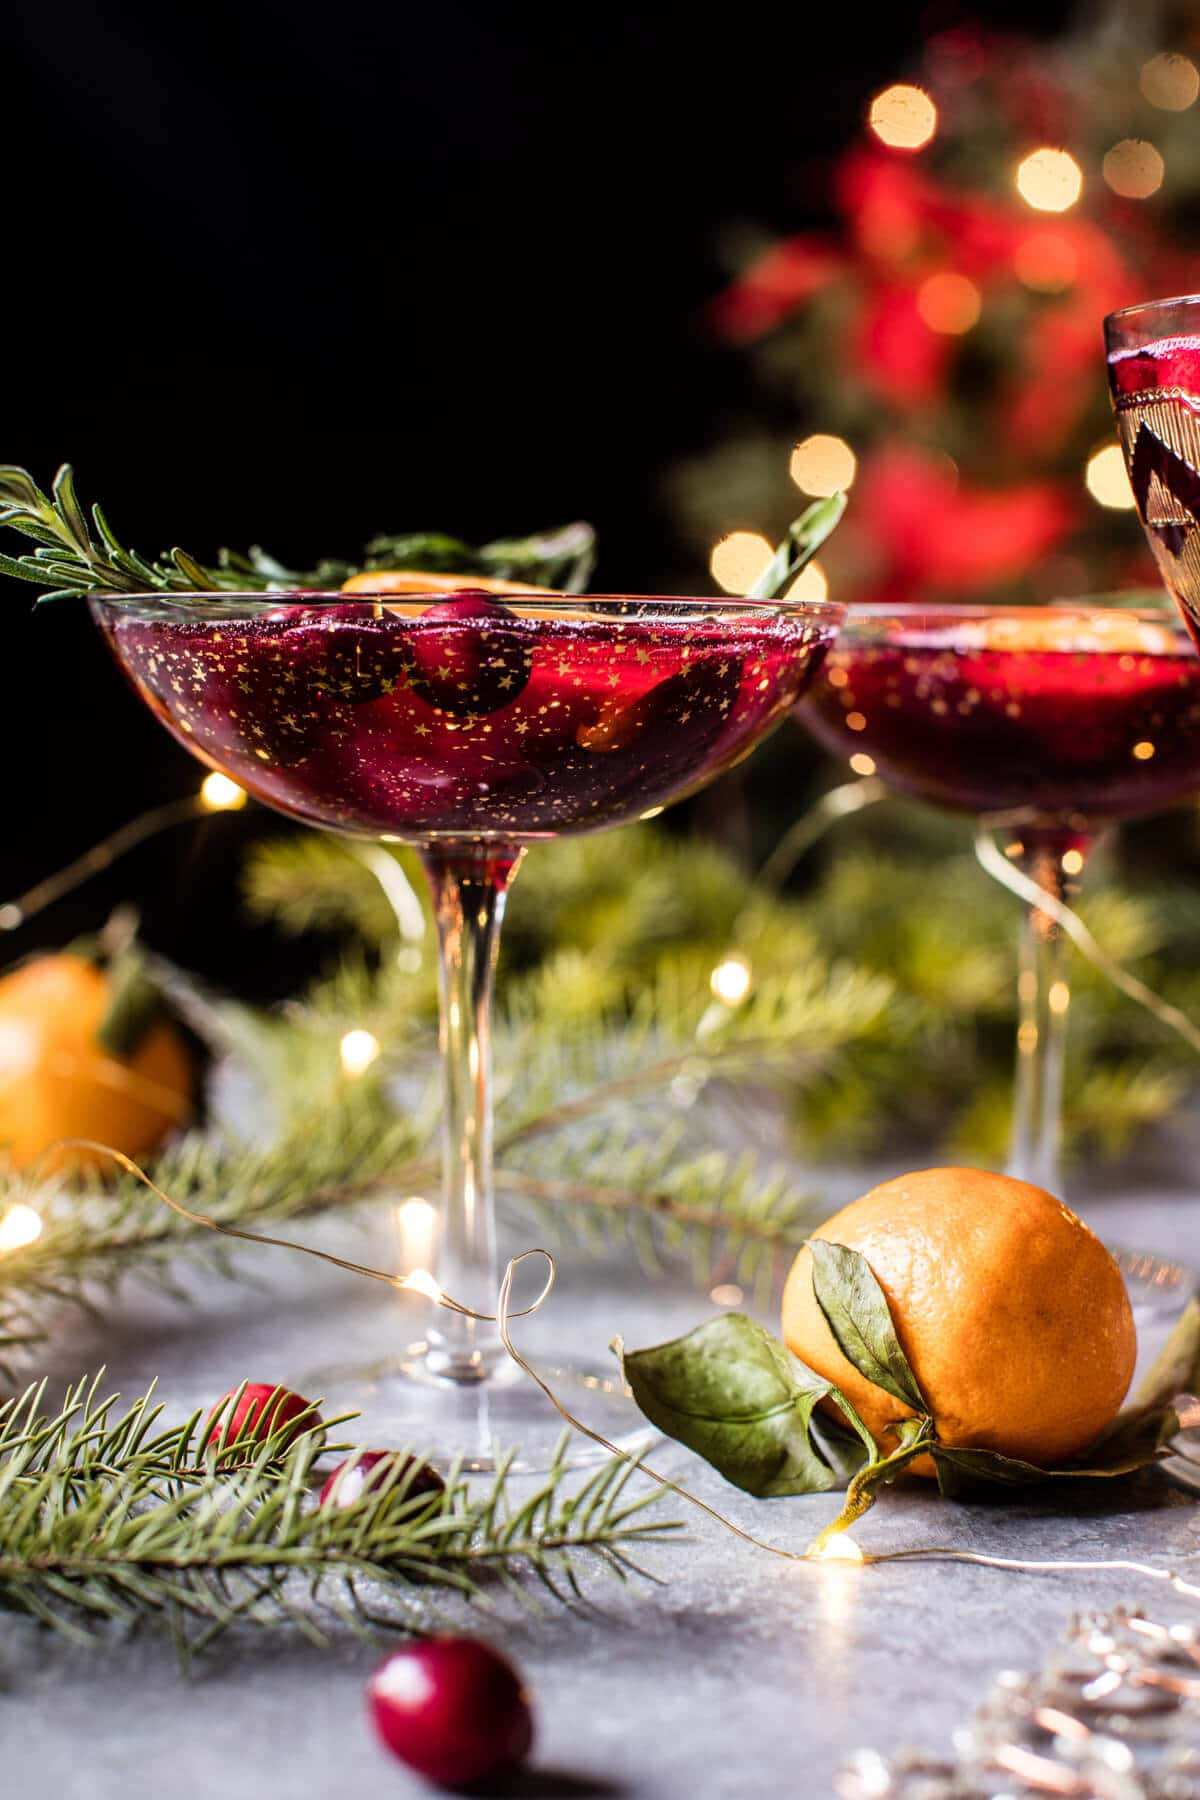 Poinsettia Spritz Punch - 3/4 cup vodka1 1/2 cup 100% cranberry juice or pomegranate juice2 ounces St. Germain elderflower liquor3/4 cup champagne1 cup fresh cranberriesslices of orange and sprigs of rosemary as garnish